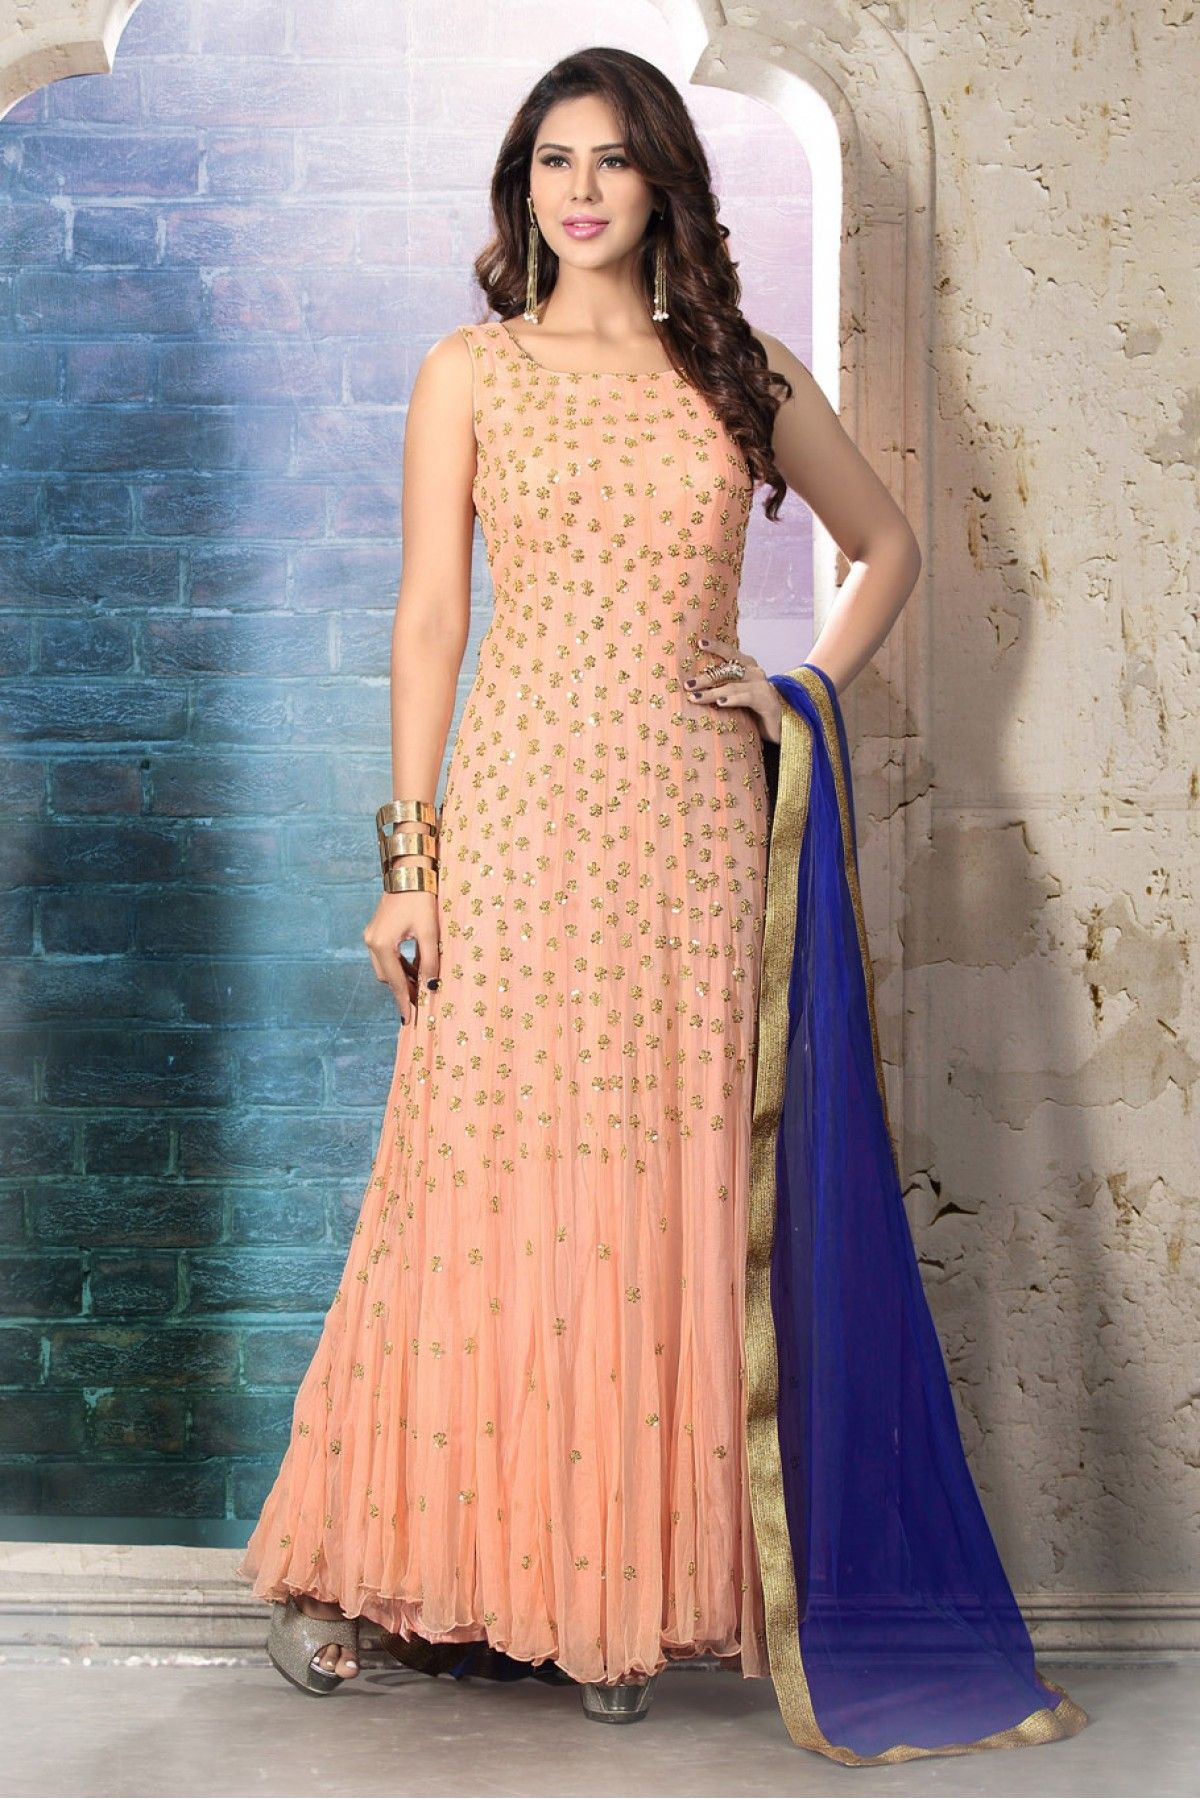 8a73019019 Peach Colour Net Fabric Party Wear Semi Stitched Anarkali Suit Comes With  Matching Bottom and Dupatta. This Suit Is Crafted With Cut Dana